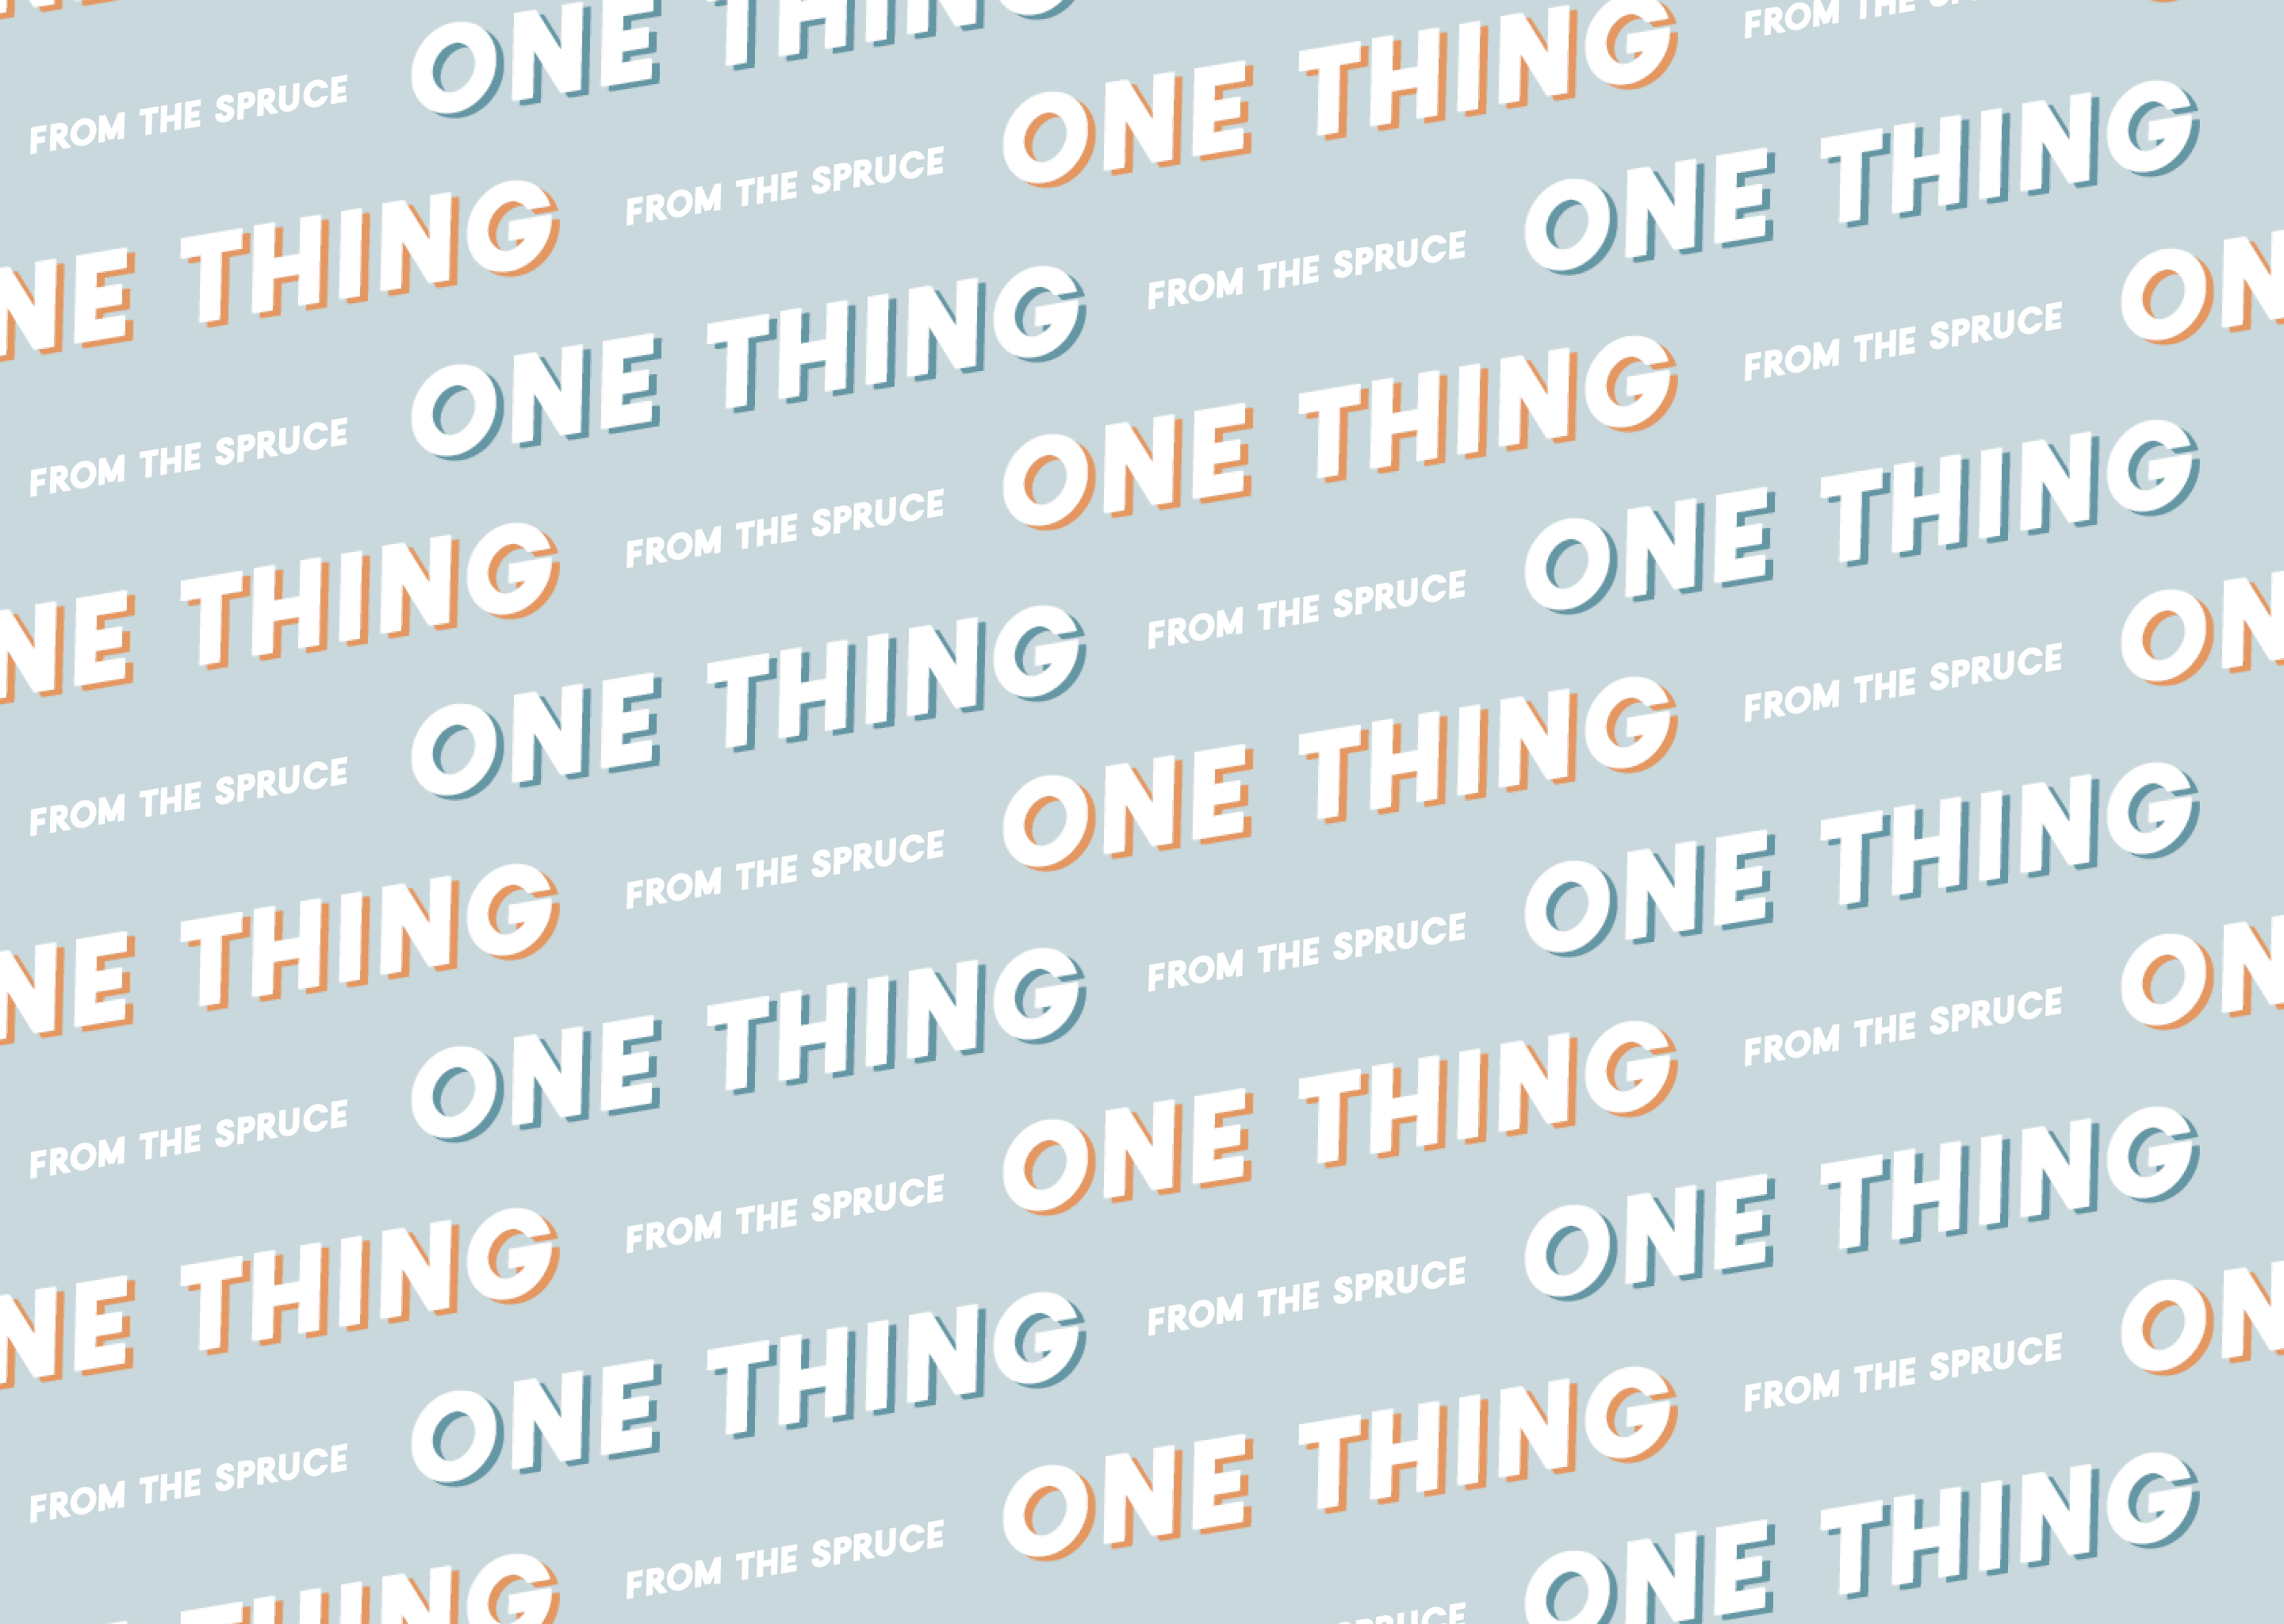 One thing logo header image